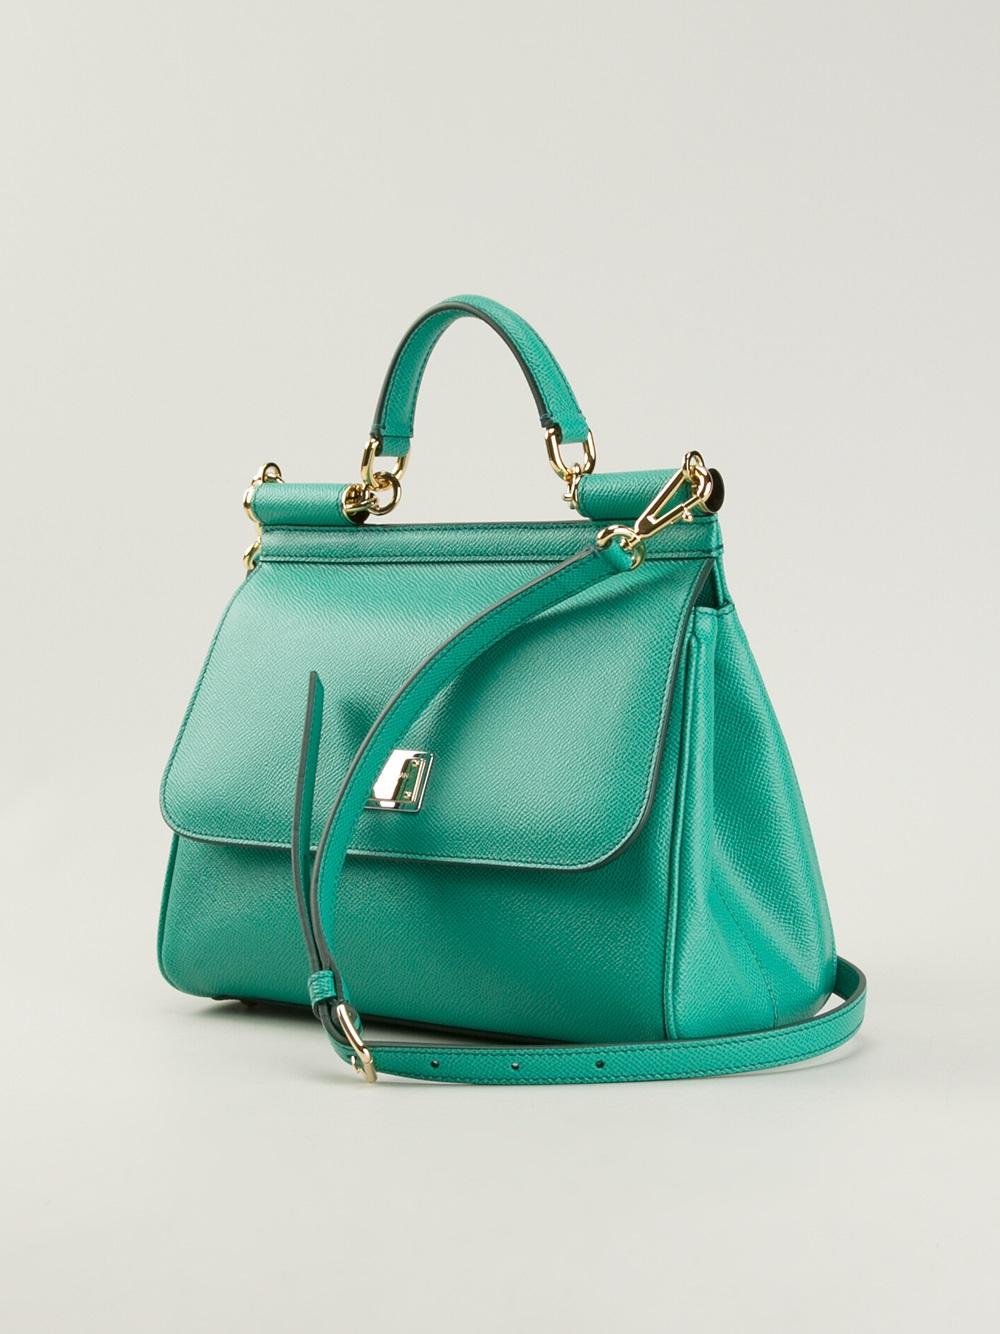 c957055702e0 Gallery. Previously sold at  Farfetch · Women s Dolce Gabbana Sicily  Women s Leather Messenger Bags ...